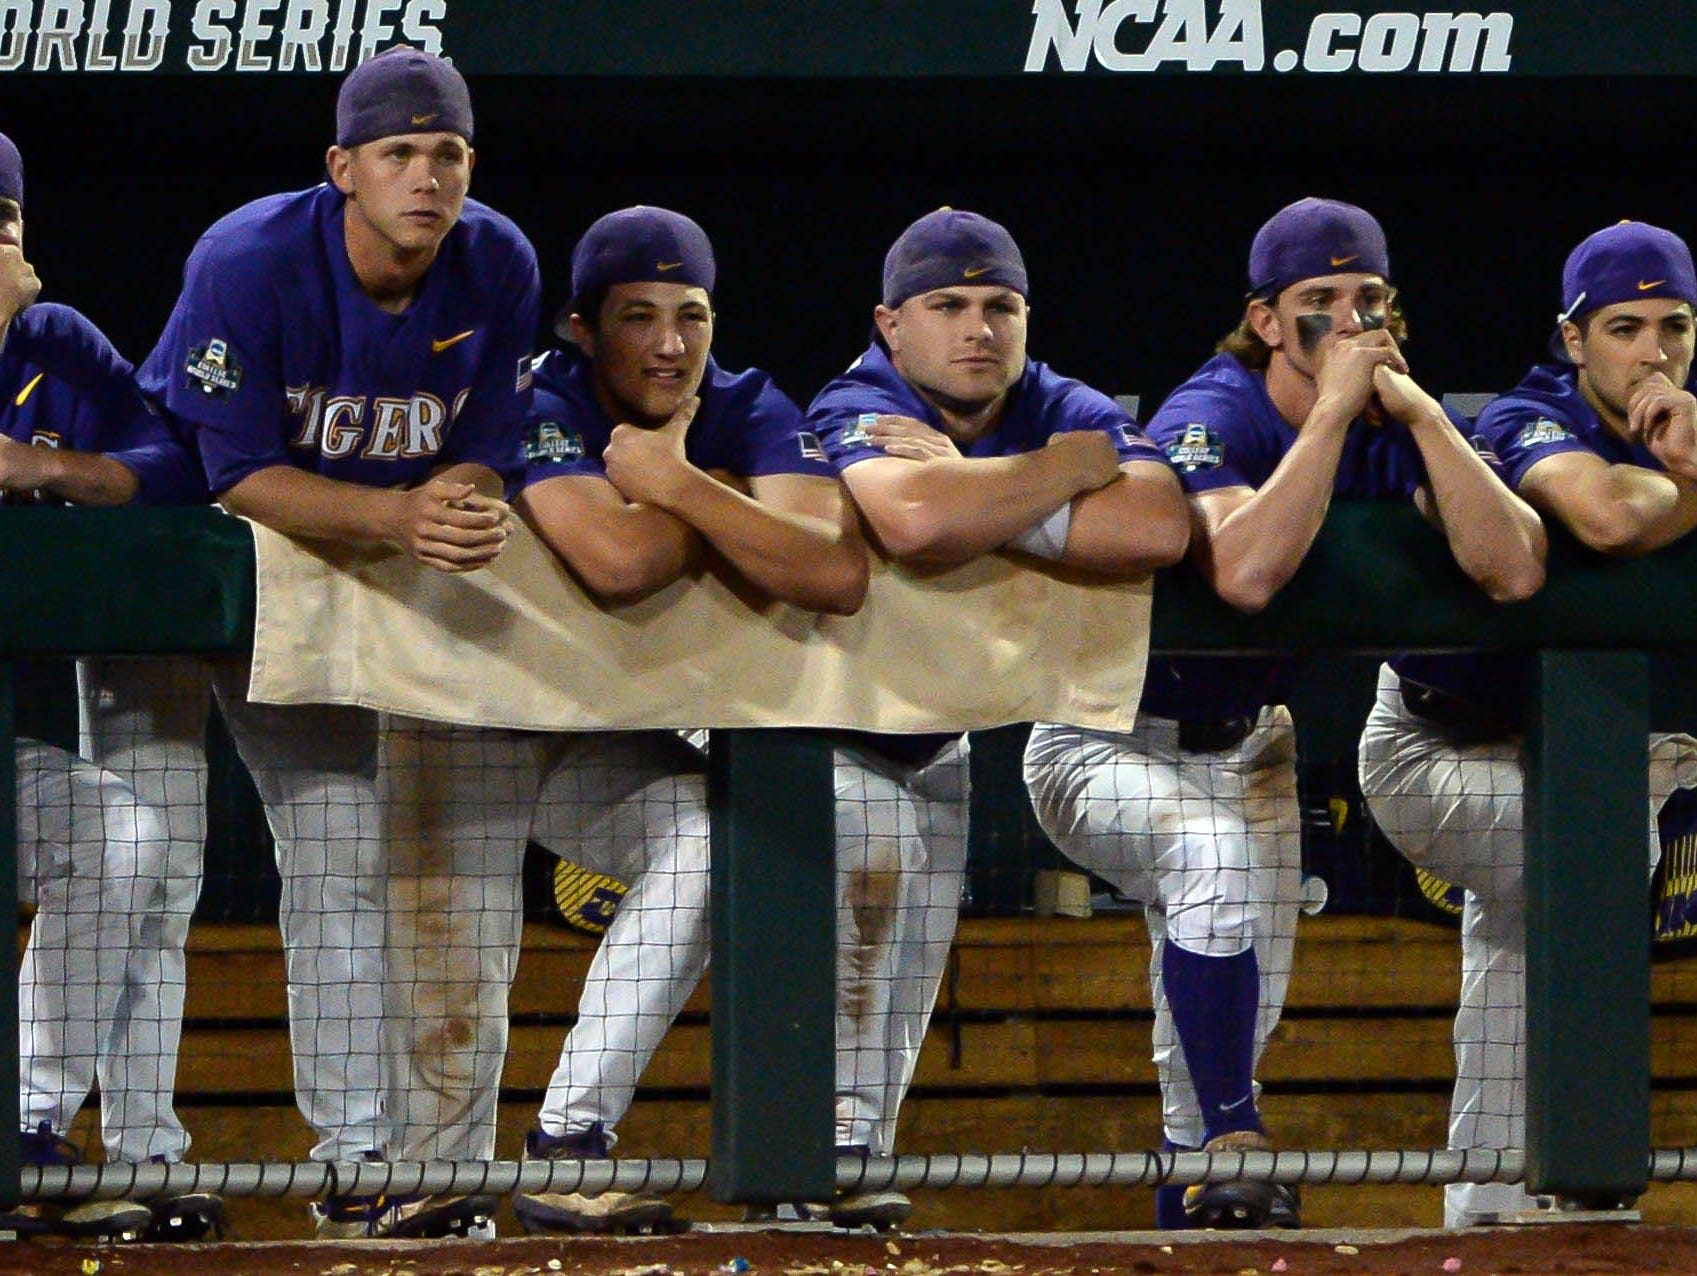 Jun 26, 2017; Omaha, NE, USA; The LSU Tigers bench watches late game action against the Florida Gators in game one of the championship series of the 2017 College World Series at TD Ameritrade Park Omaha. Mandatory Credit: Steven Branscombe-USA TODAY Sports